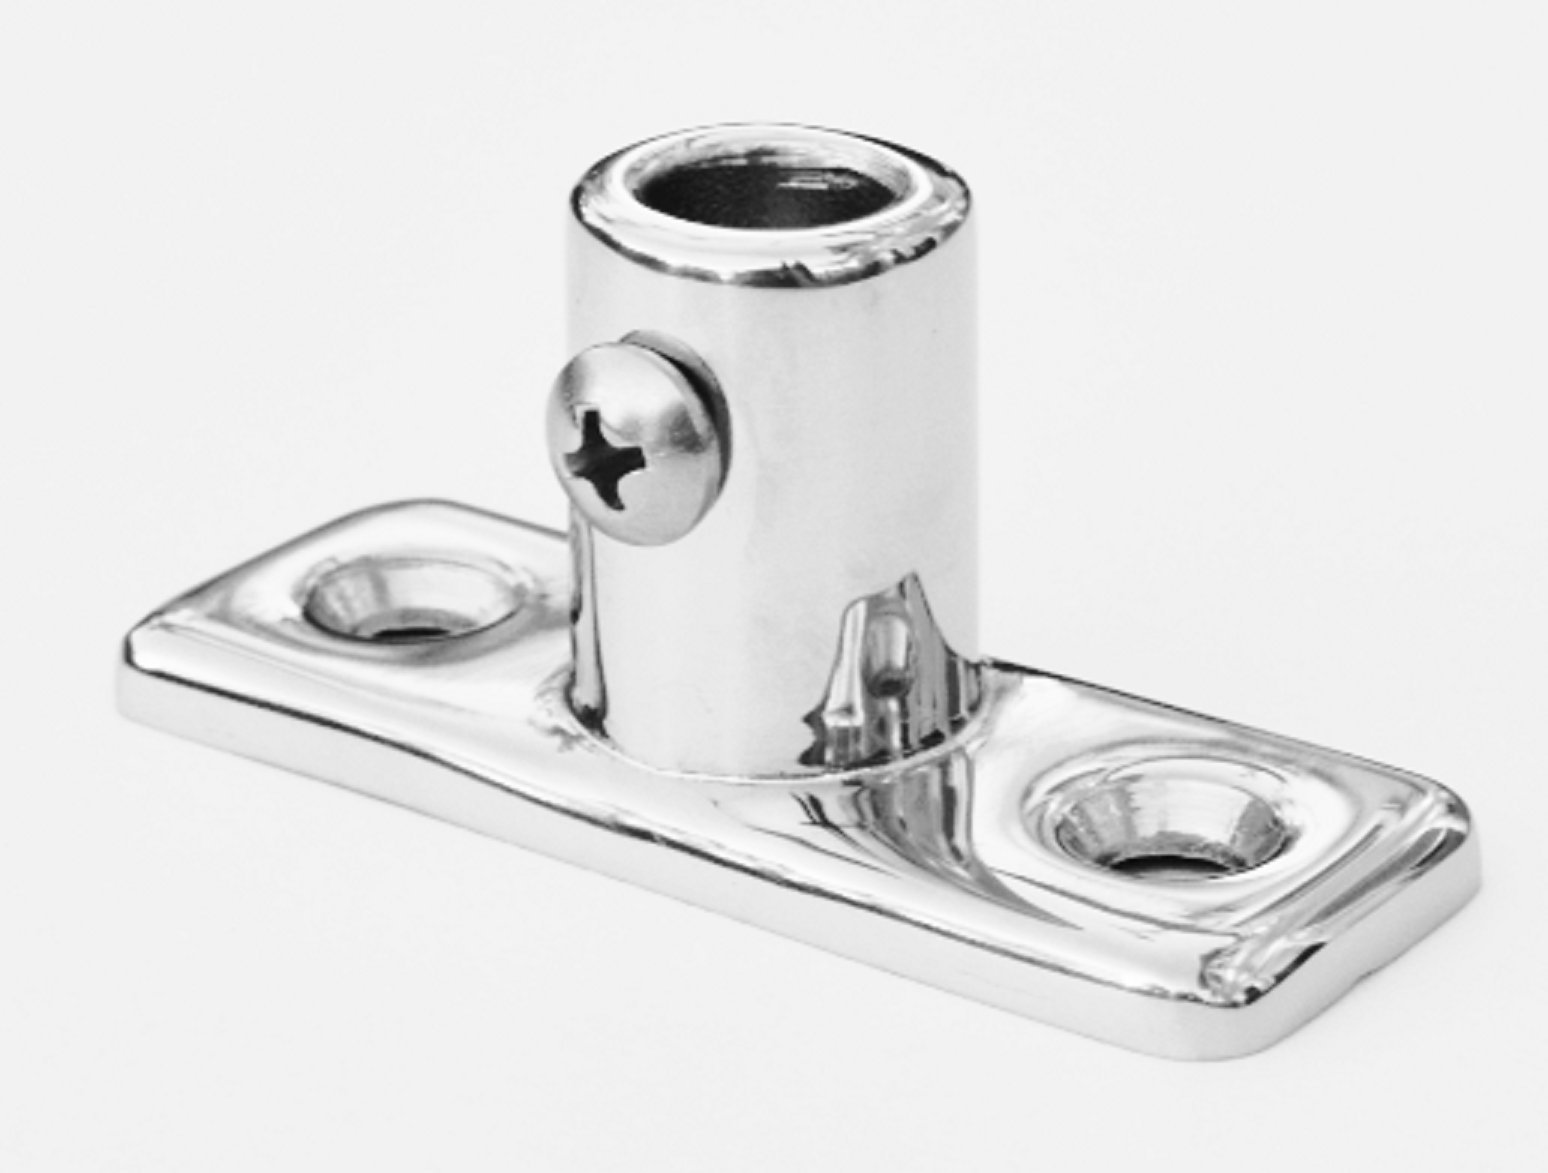 Marine Grade Stainless Steel Boston Whaler Stanchion End for Rail OD 3/4'' - Stanchion End